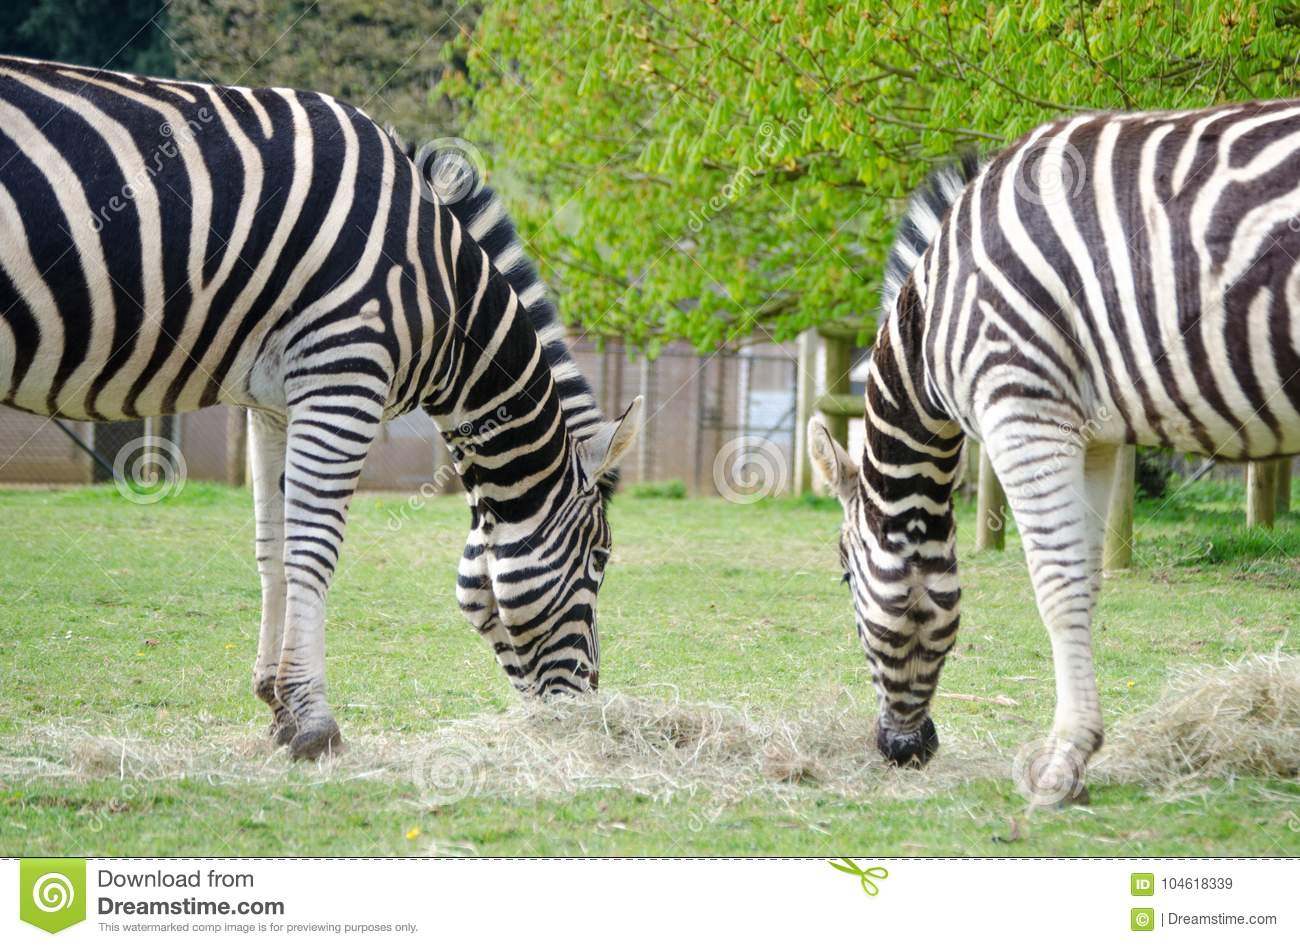 Two Zebras munching the same hay in a wildlife park